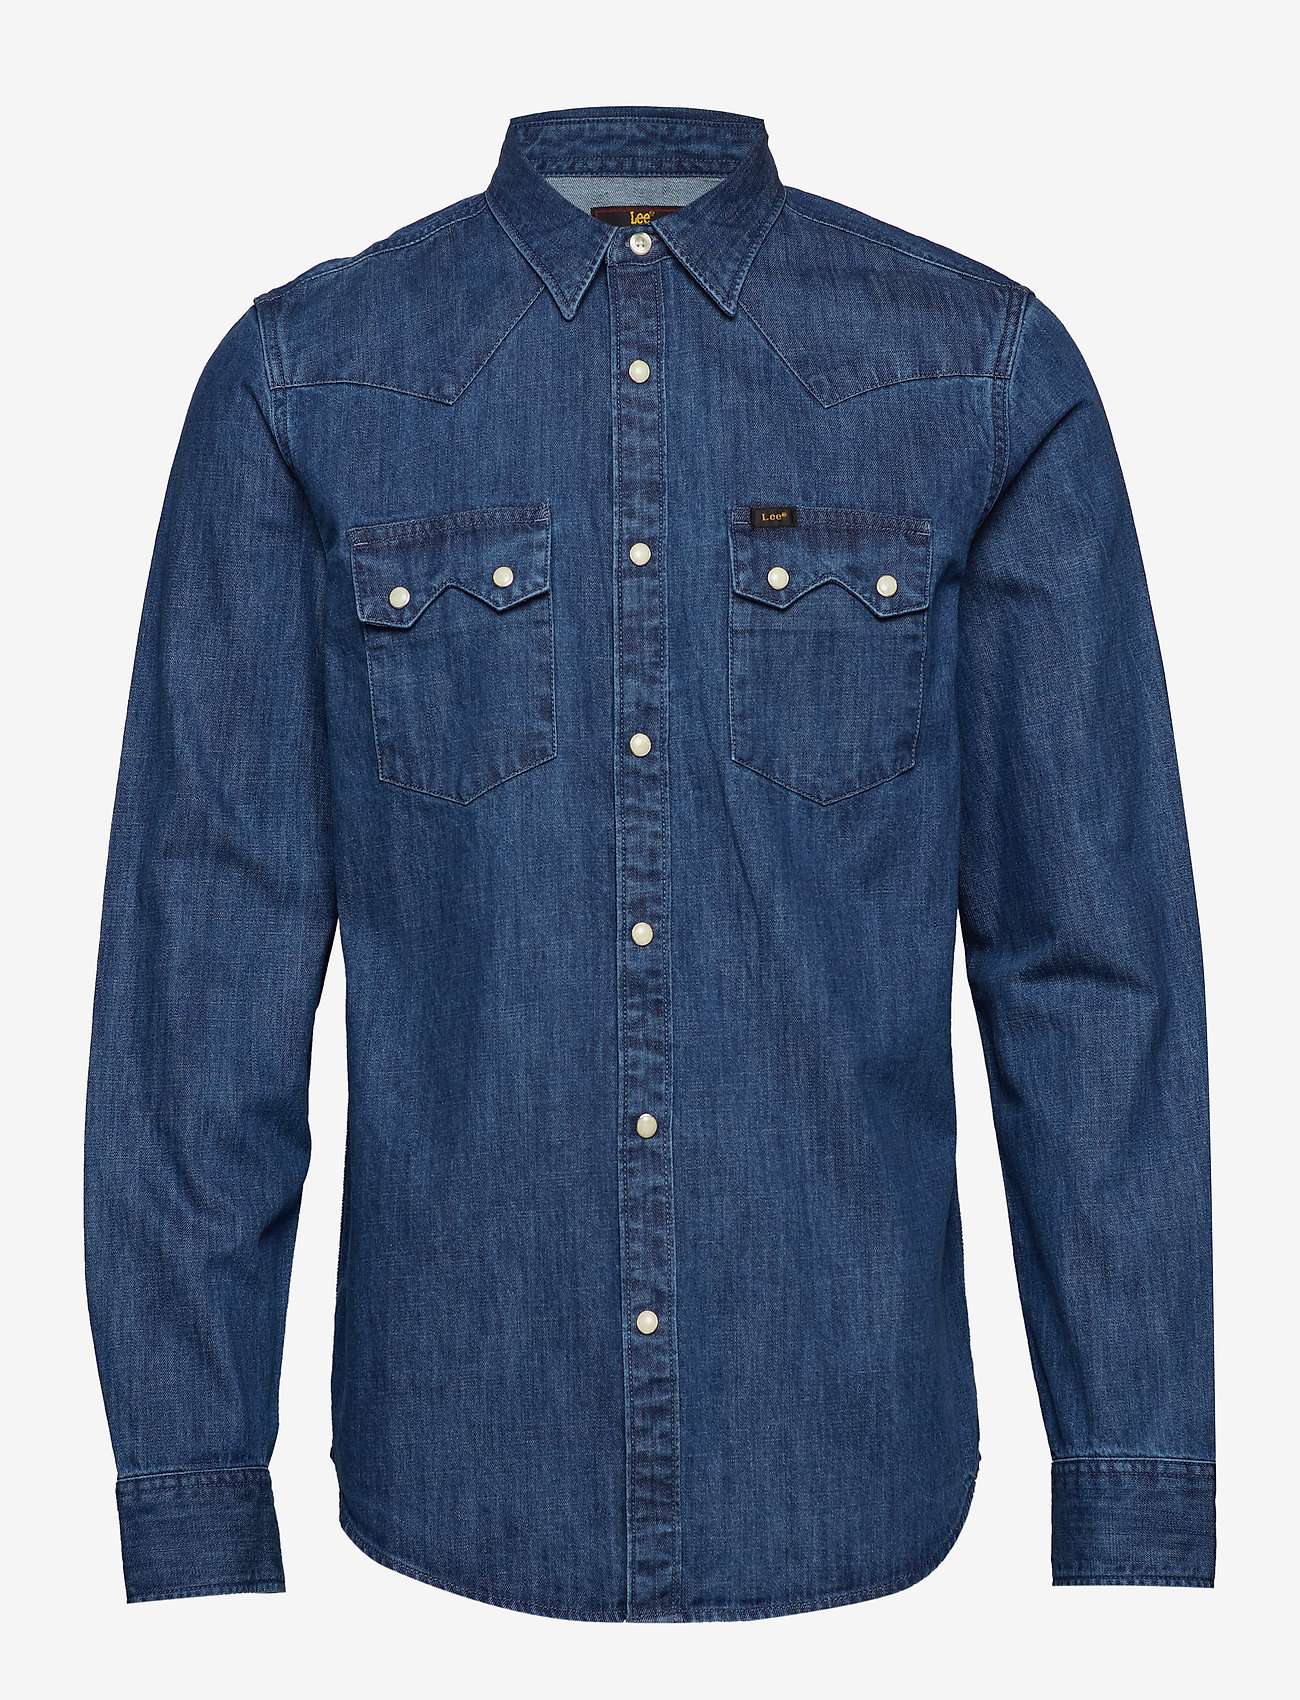 Lee Jeans - LEE RIDER SHIRT - denim shirts - dipped blue - 0